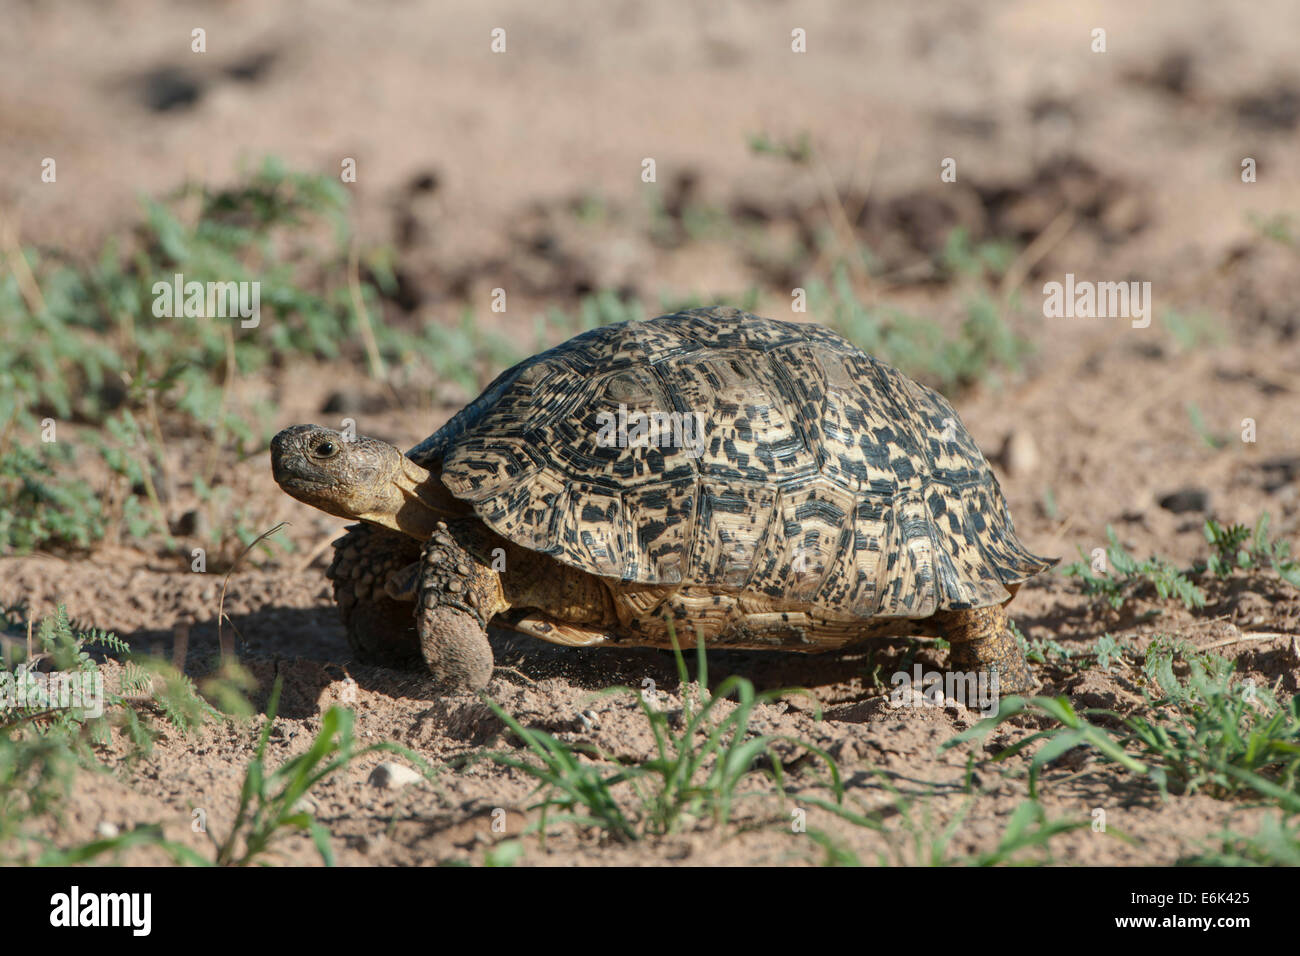 Leopard Tortoise (Geochelone pardalis), Kgalagadi Transfrontier Park, Northern Cape, South Africa Stock Photo